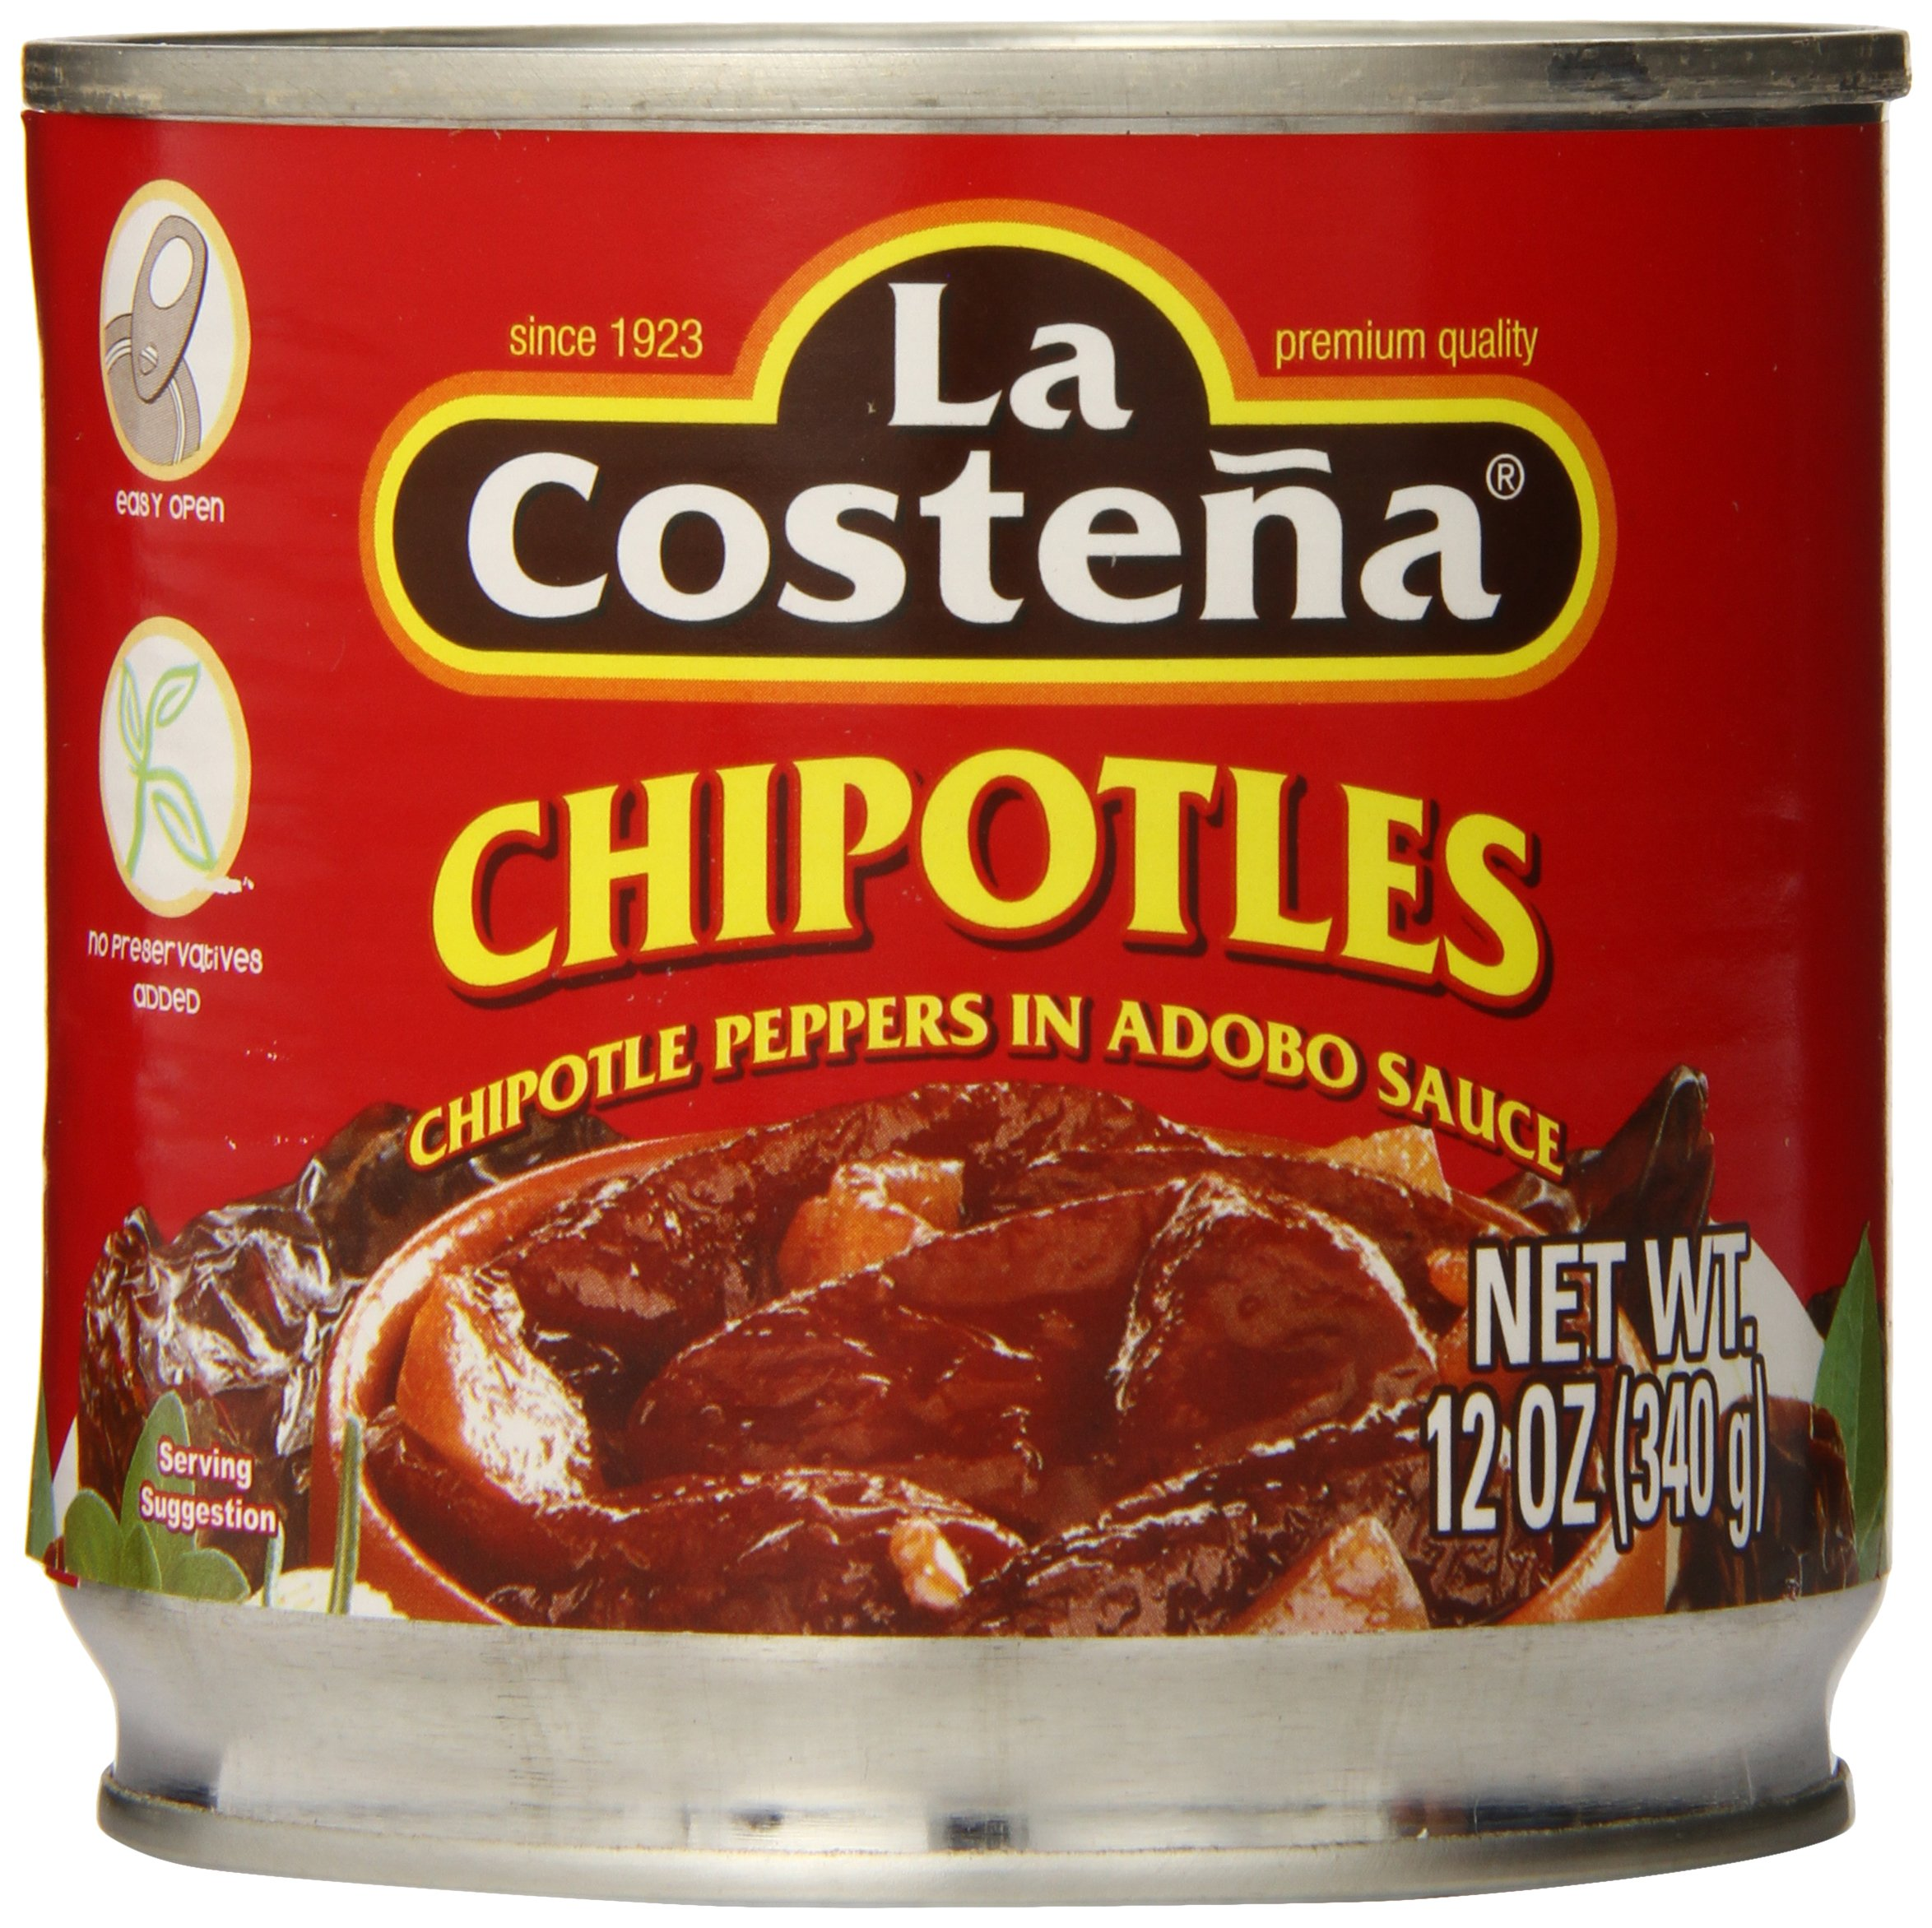 La Costena Chipotle Peppers, 12 Ounce (Pack of 12) by LA COSTENA (Image #1)